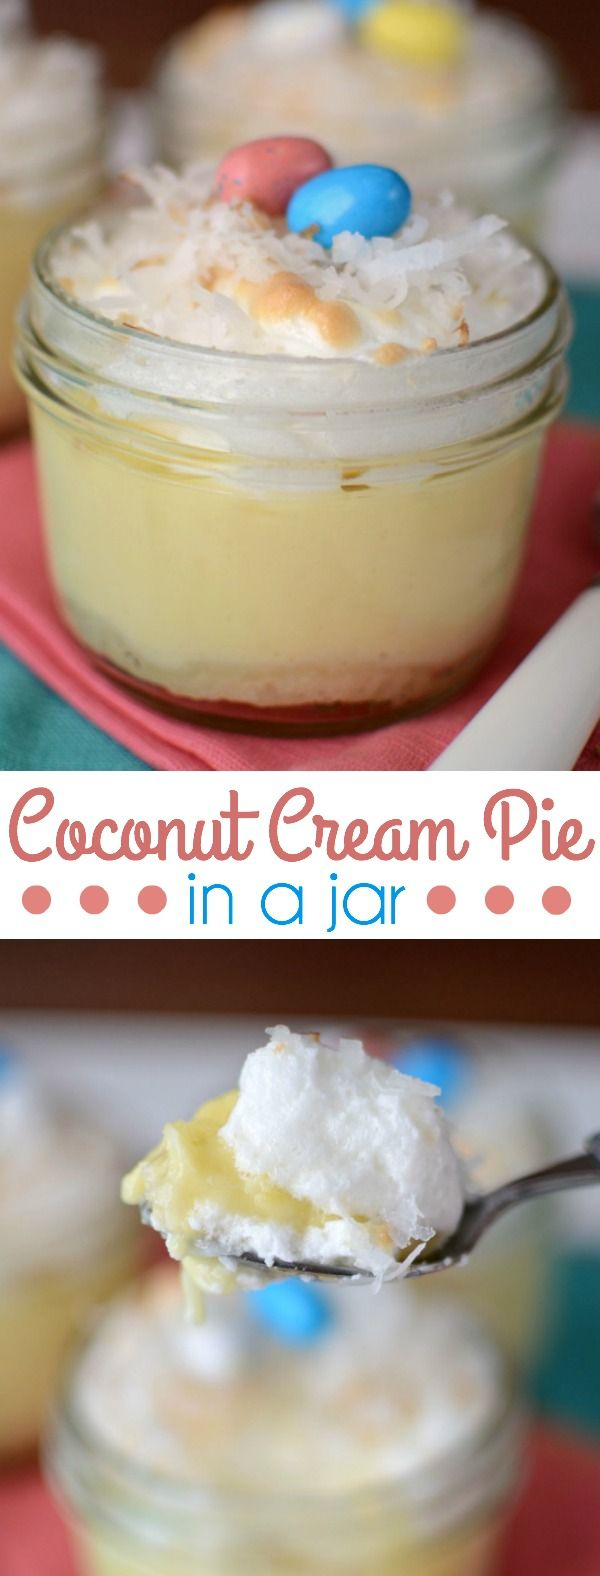 shop designer shoes online Coconut Cream Pies in jars have a homemade crust and a from scratch pudding. Filled with coconut and a meringue topping, these single serving cream pies are the perfect dessert for any occasion!